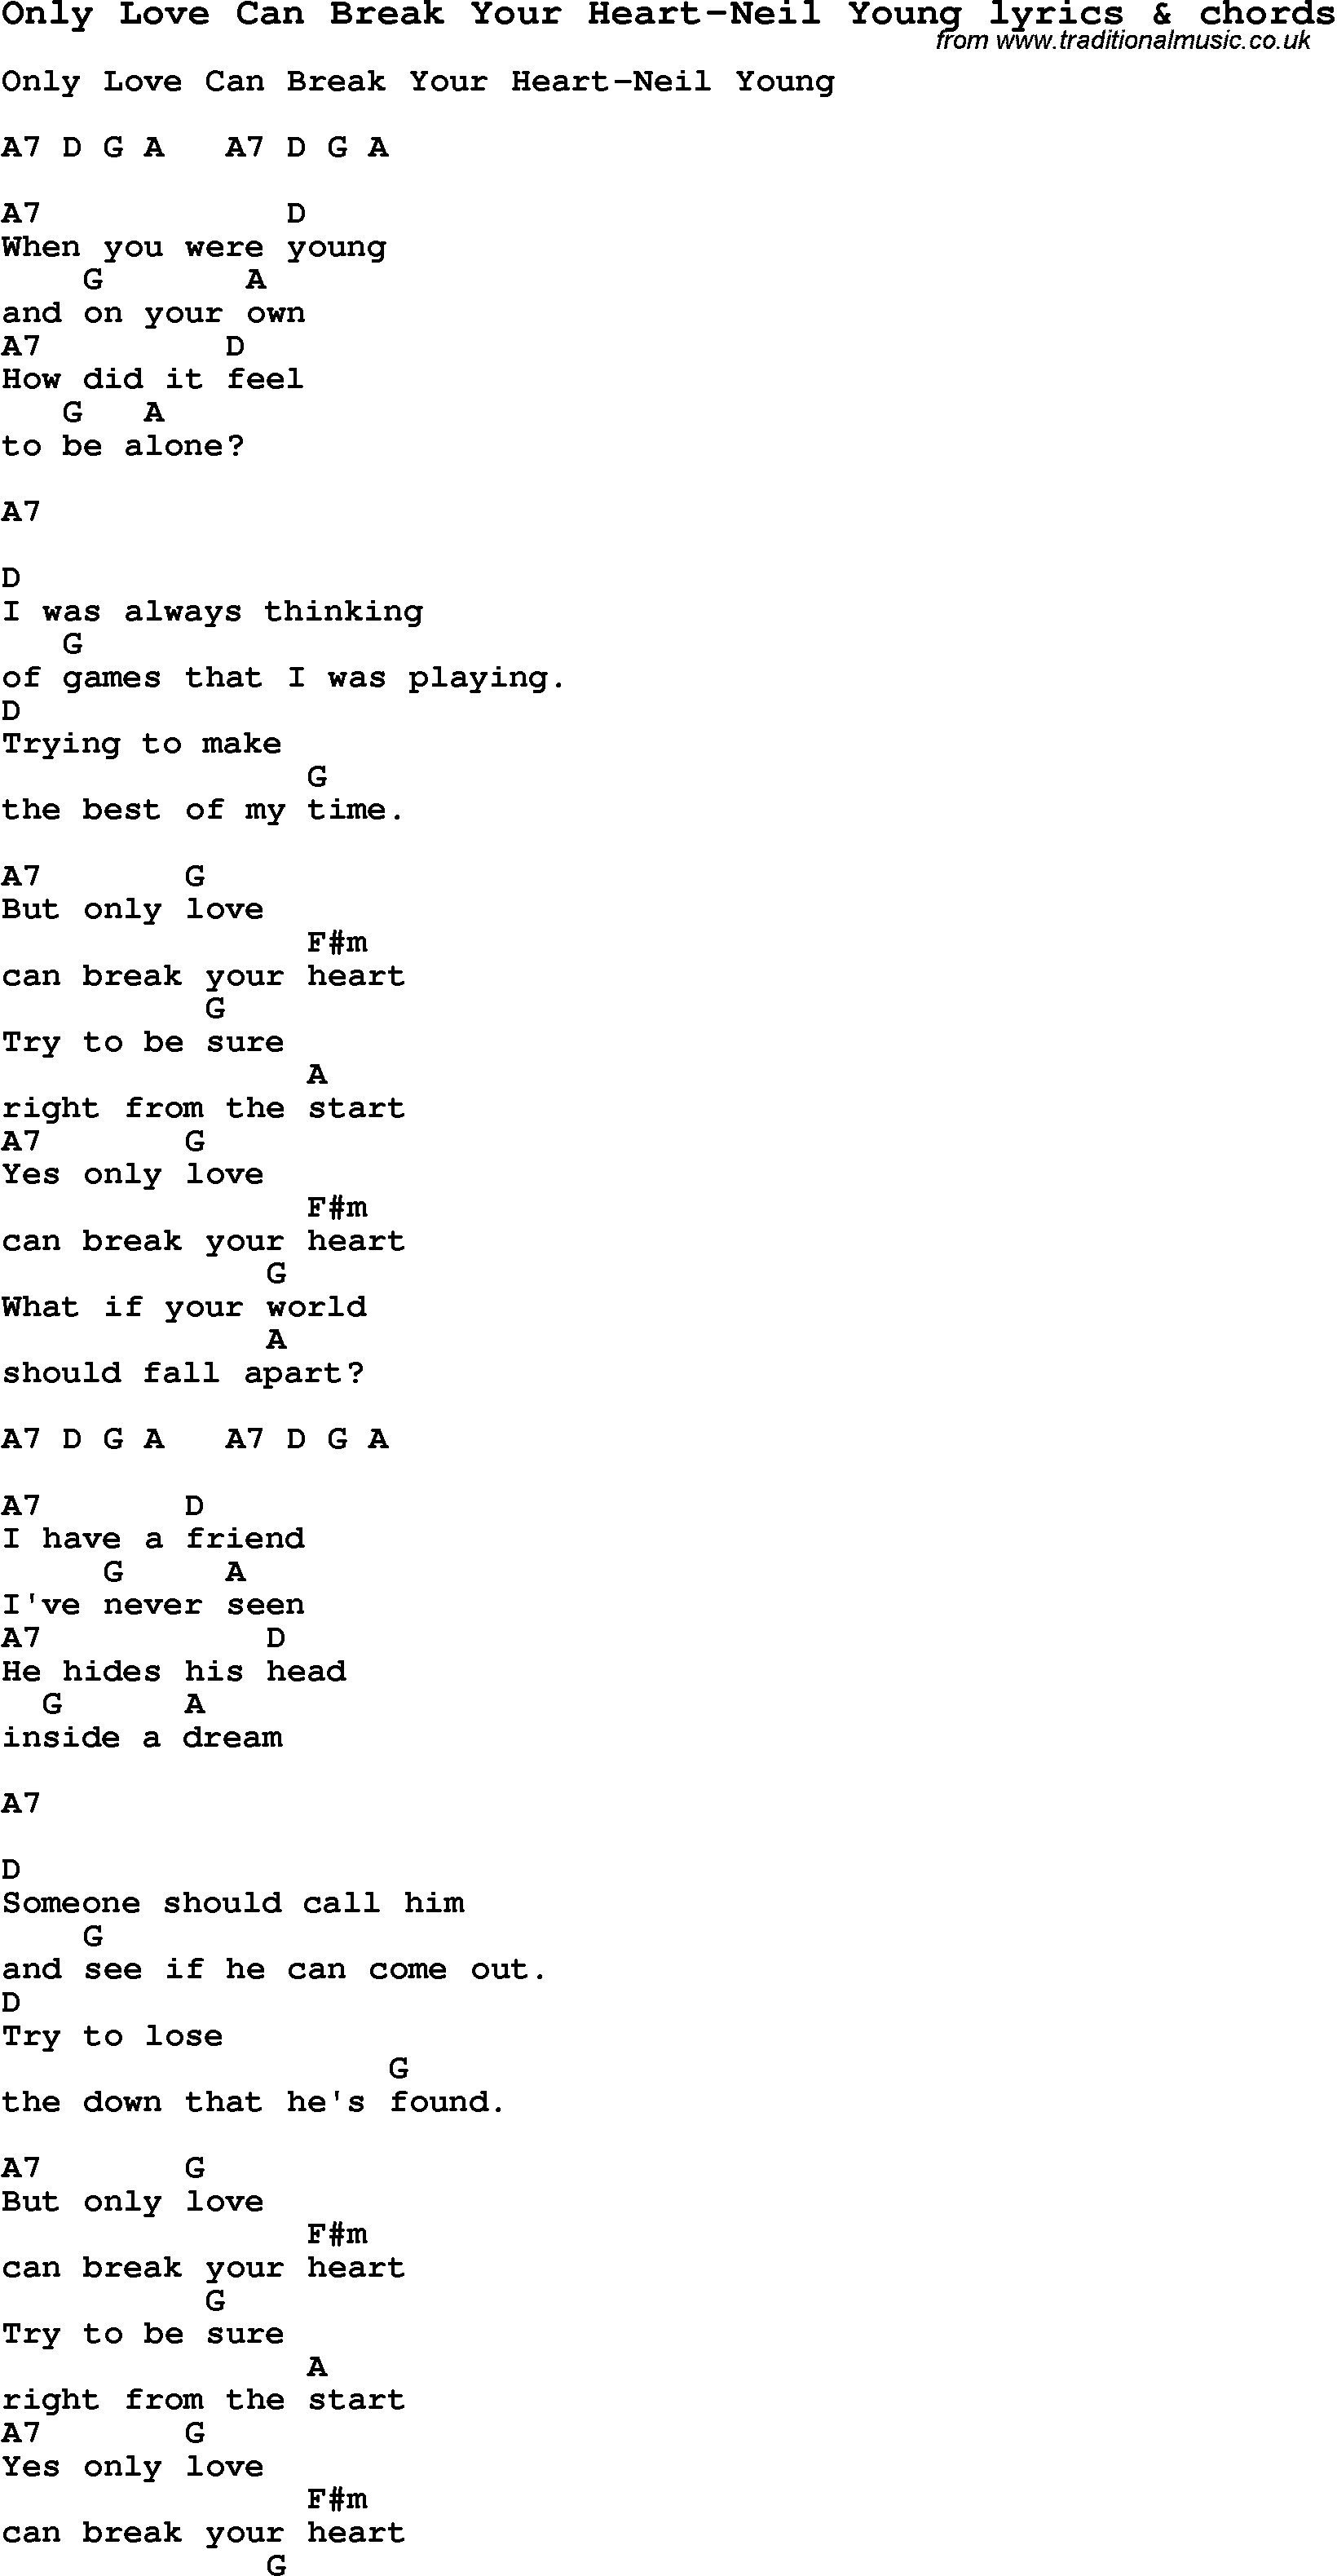 Love song lyrics foronly love can break your heart neil young love song lyrics for only love can break your heart neil young with chords hexwebz Image collections